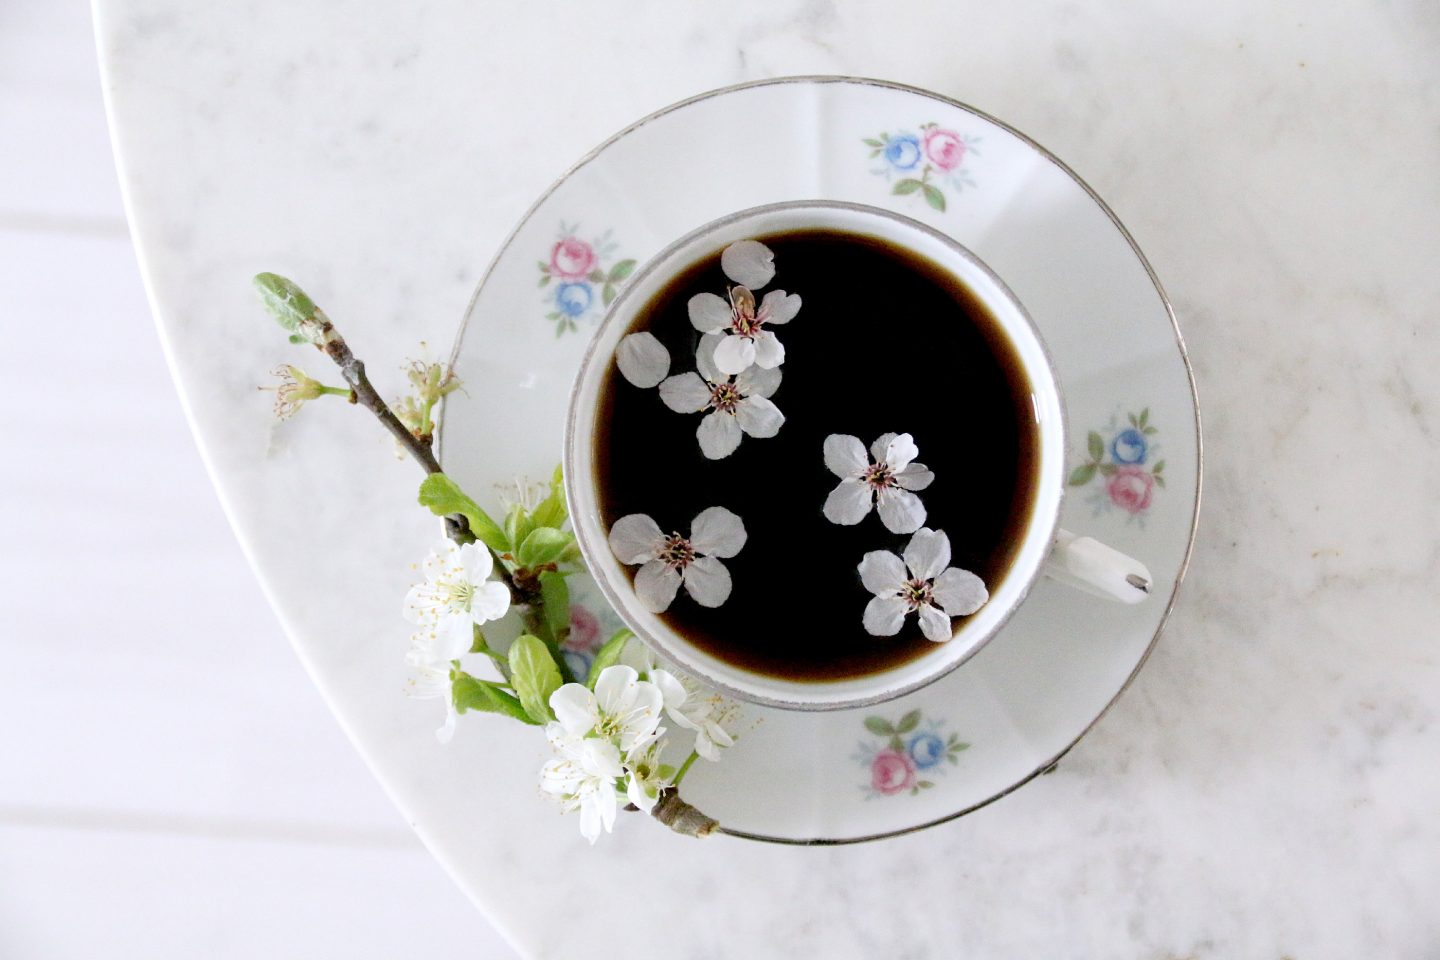 apple blossom spring garden coffee time